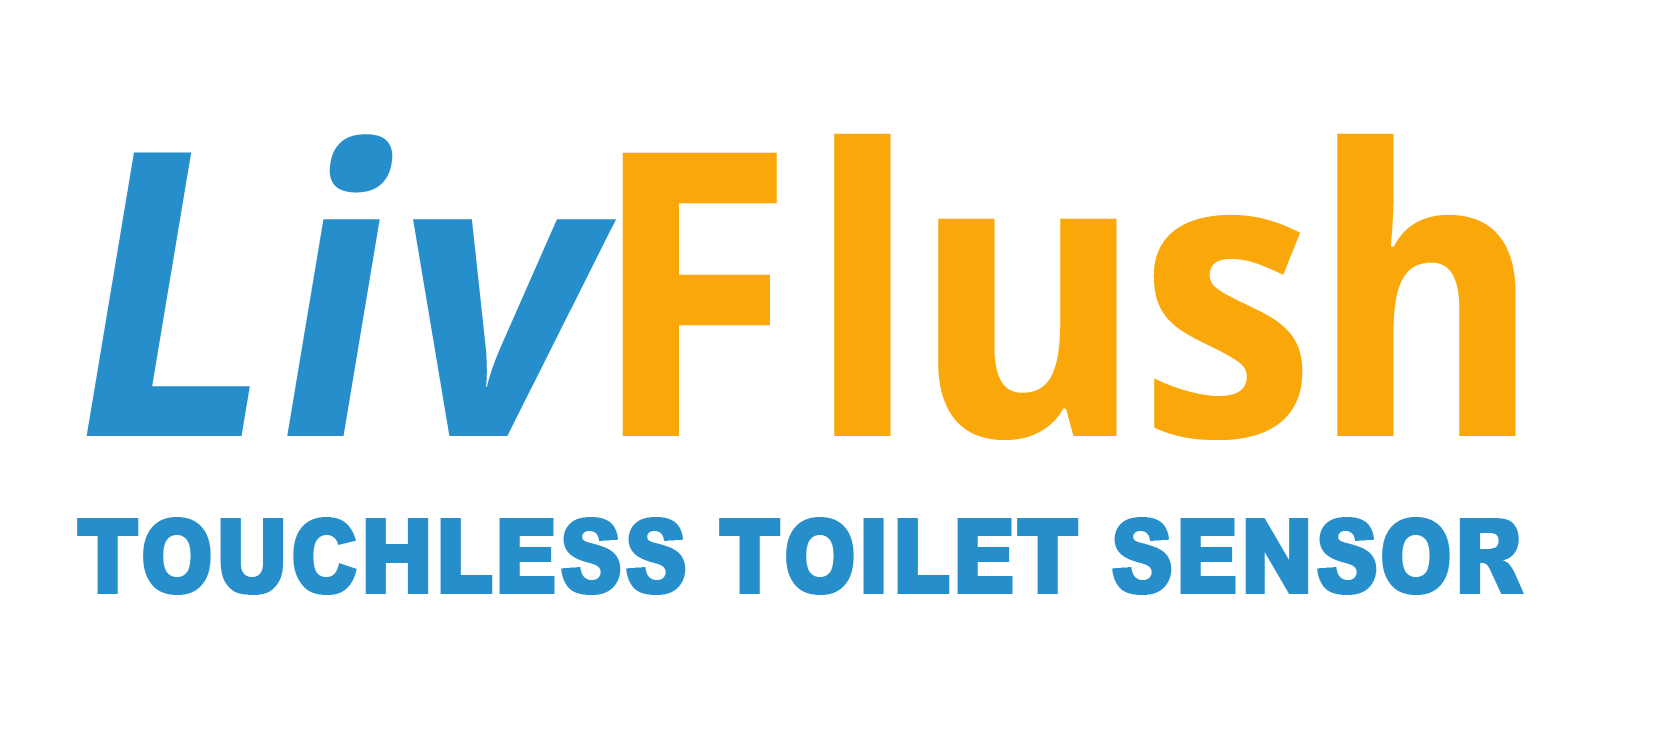 LivFlush - The World's First Add-On Touchless Home-Use Toilet Flush Sensor - Announces Launch